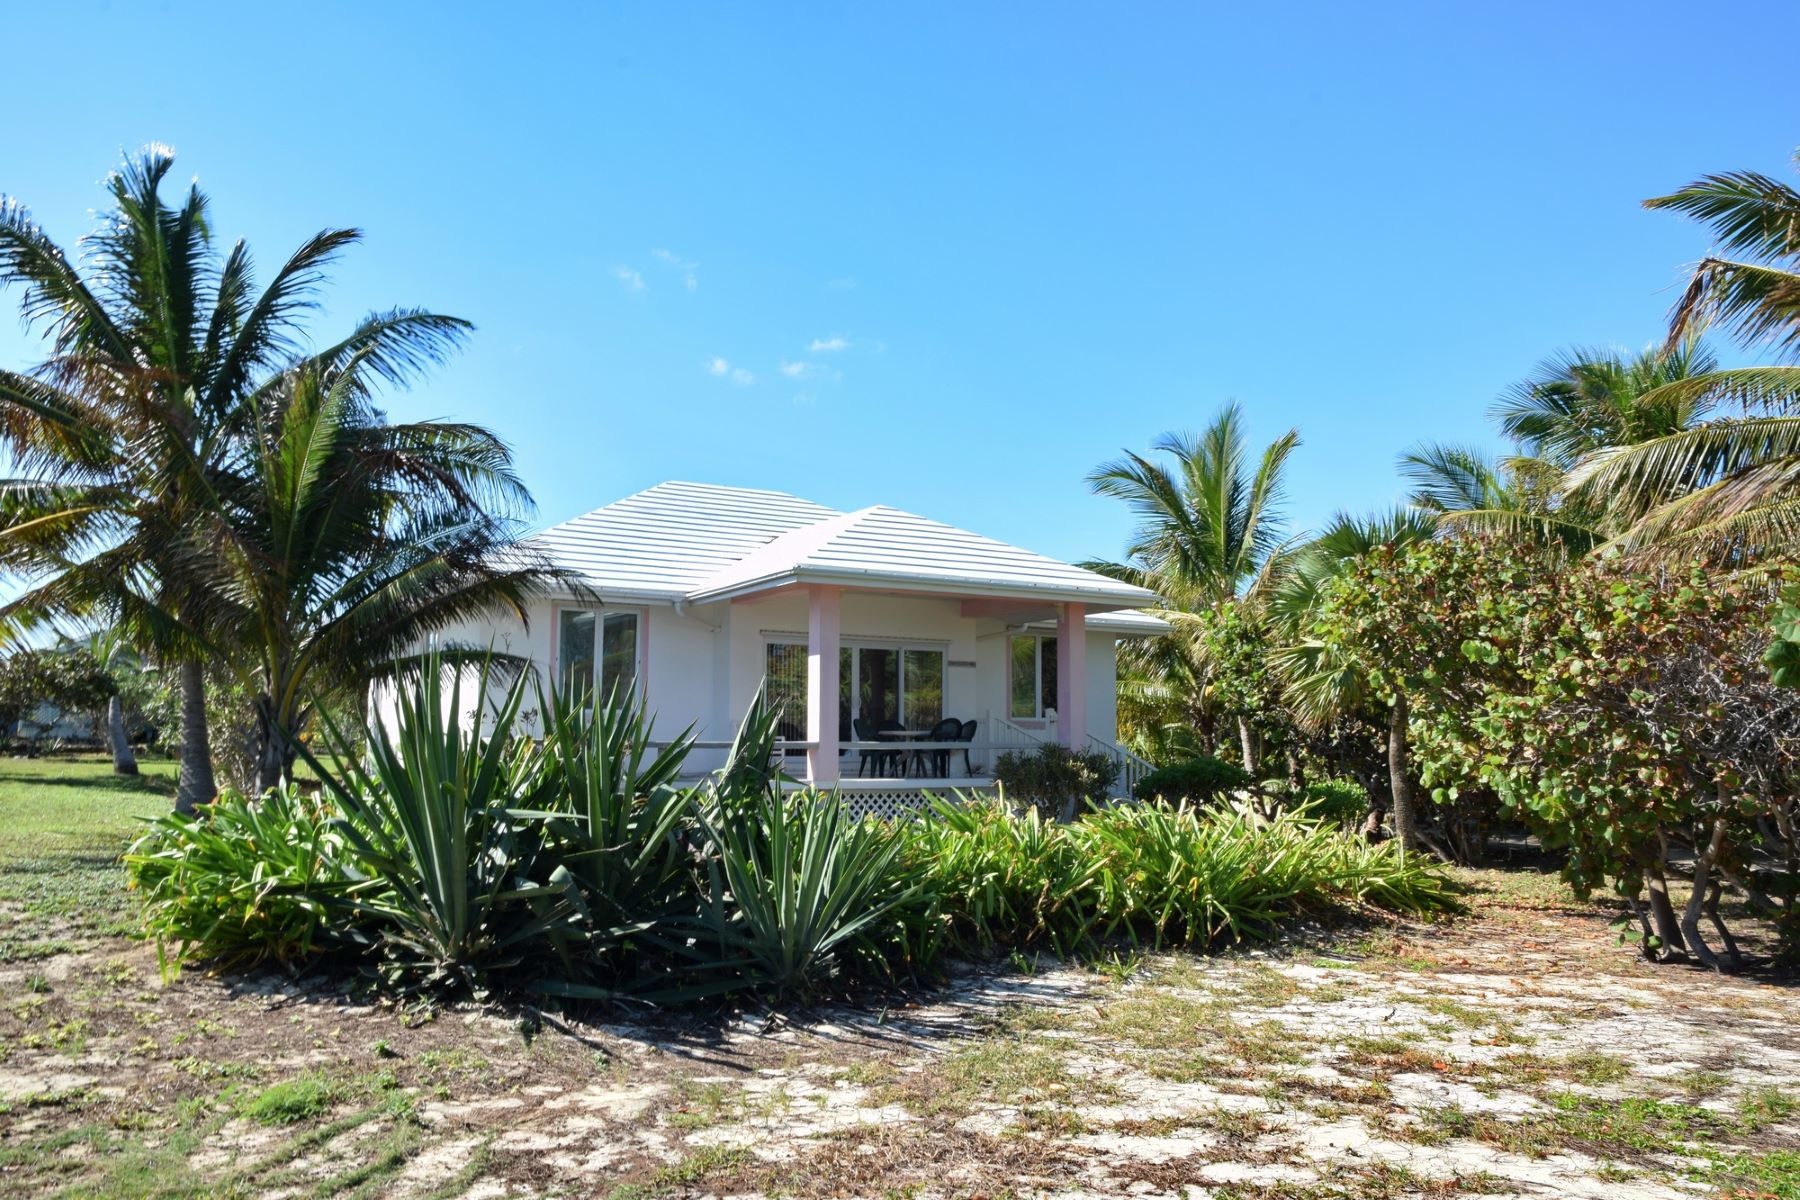 Single Family Home for Sale at Conch Shell Cottage Green Turtle Cay, Abaco, Bahamas